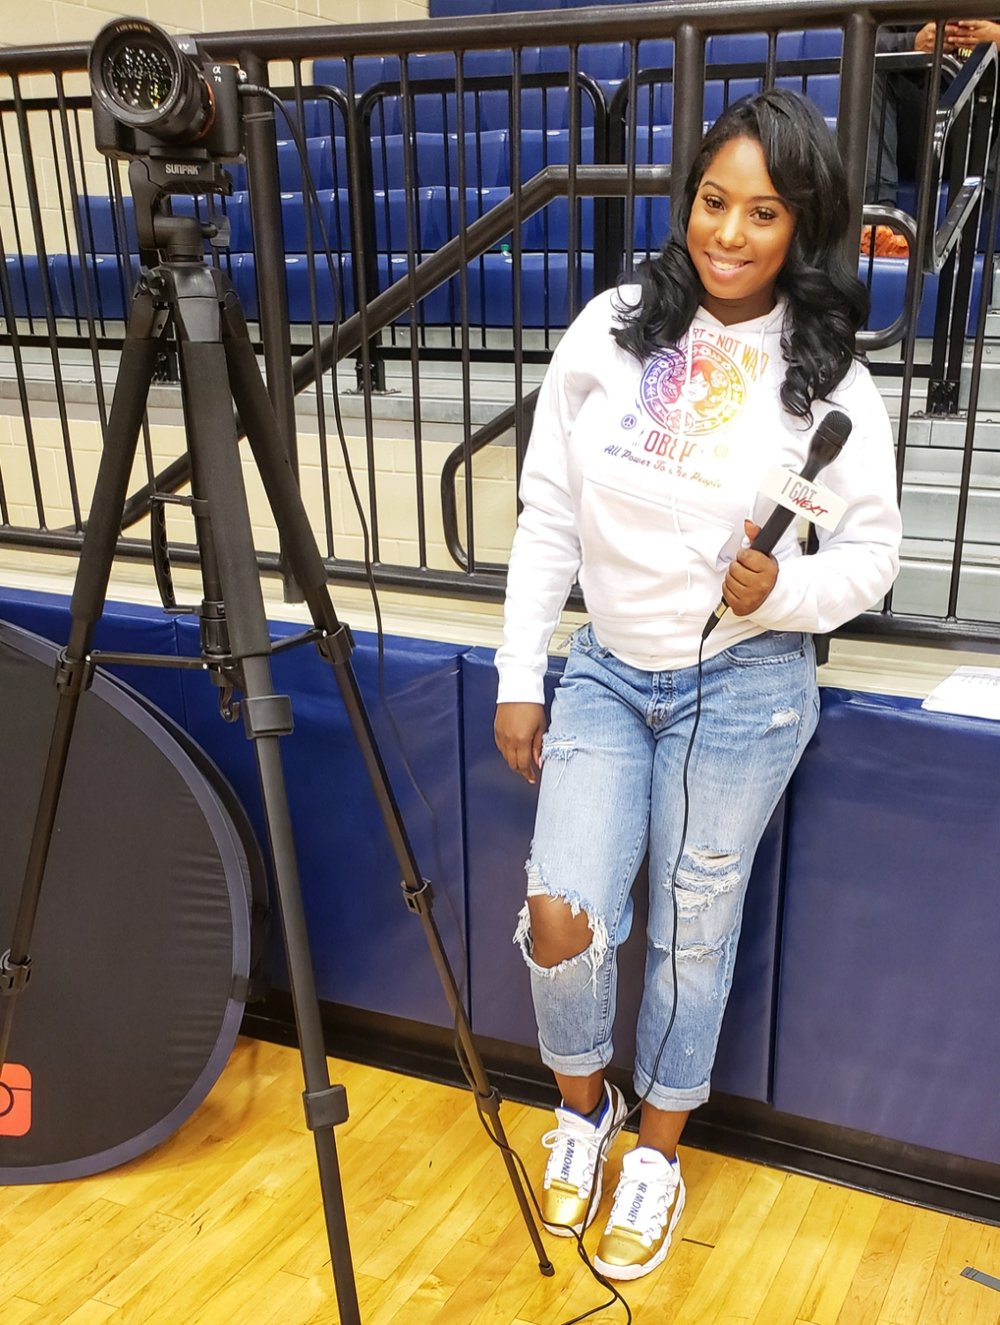 TOC CLASSIC - Sideline Interviews